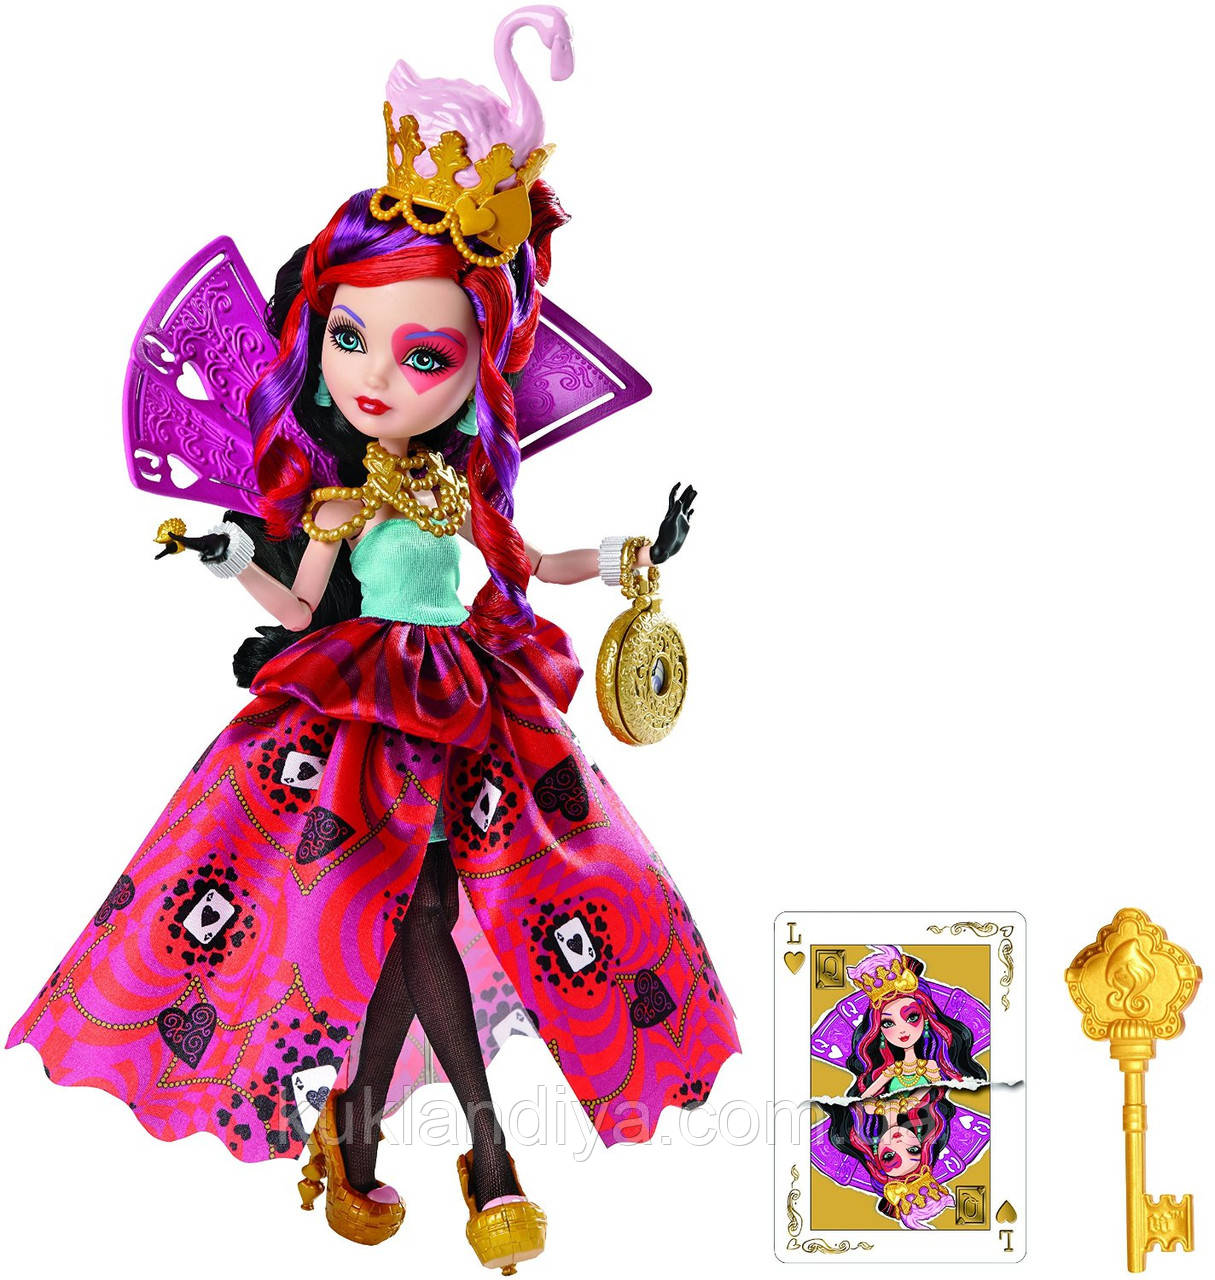 Кукла Ever After High Way Too Wonderland Lizzie Hearts Лиззи Хатс